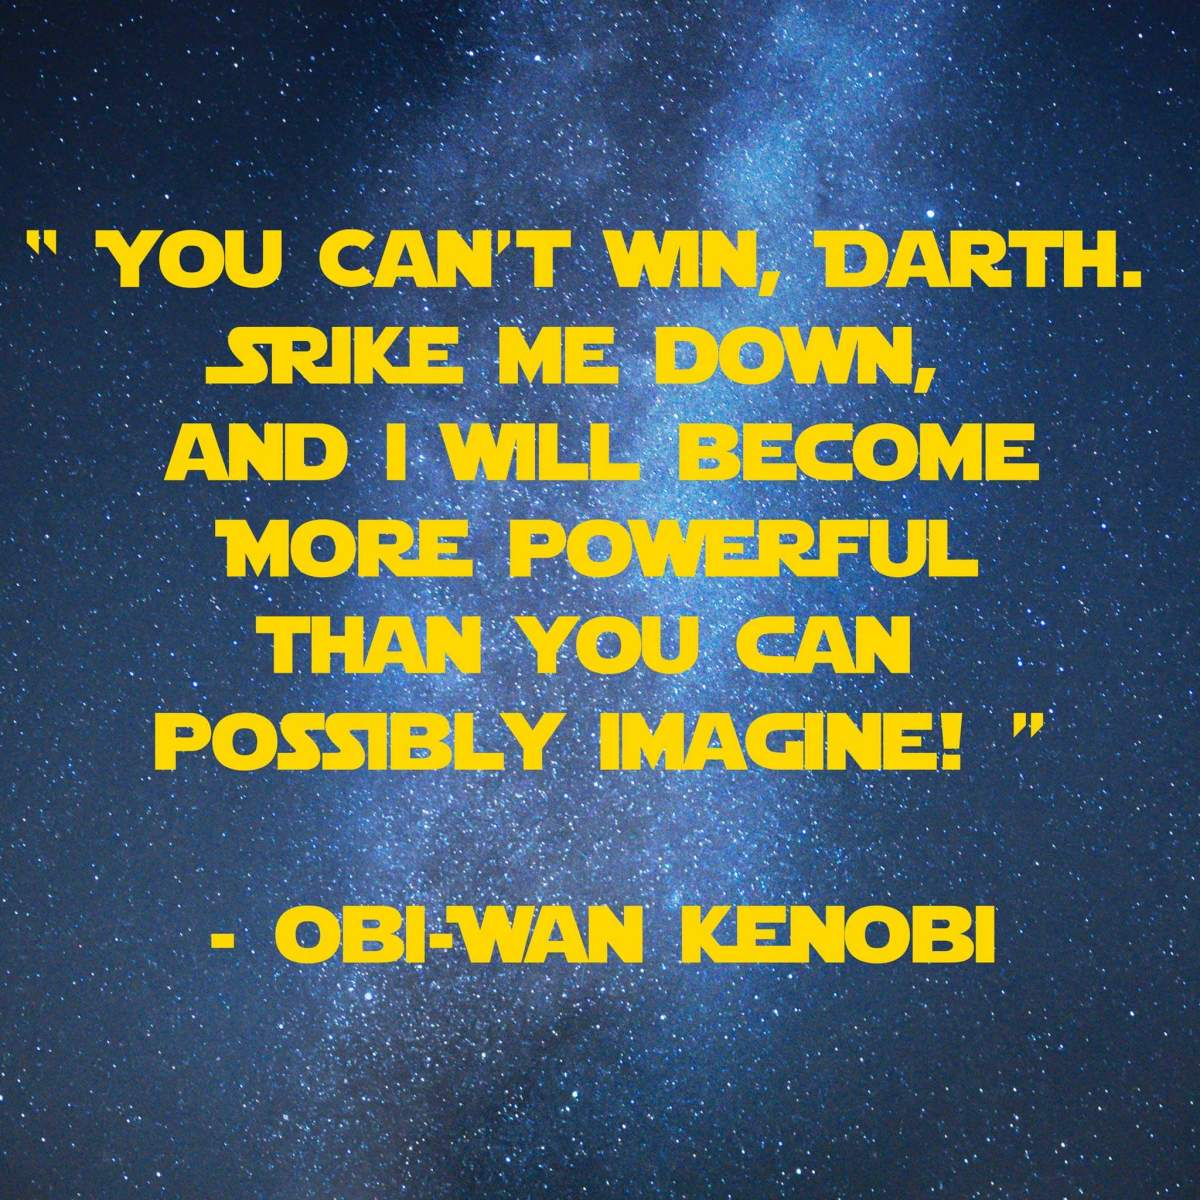 You Cant win Darth | 31 Memorable Star Wars Quotes for Geeks